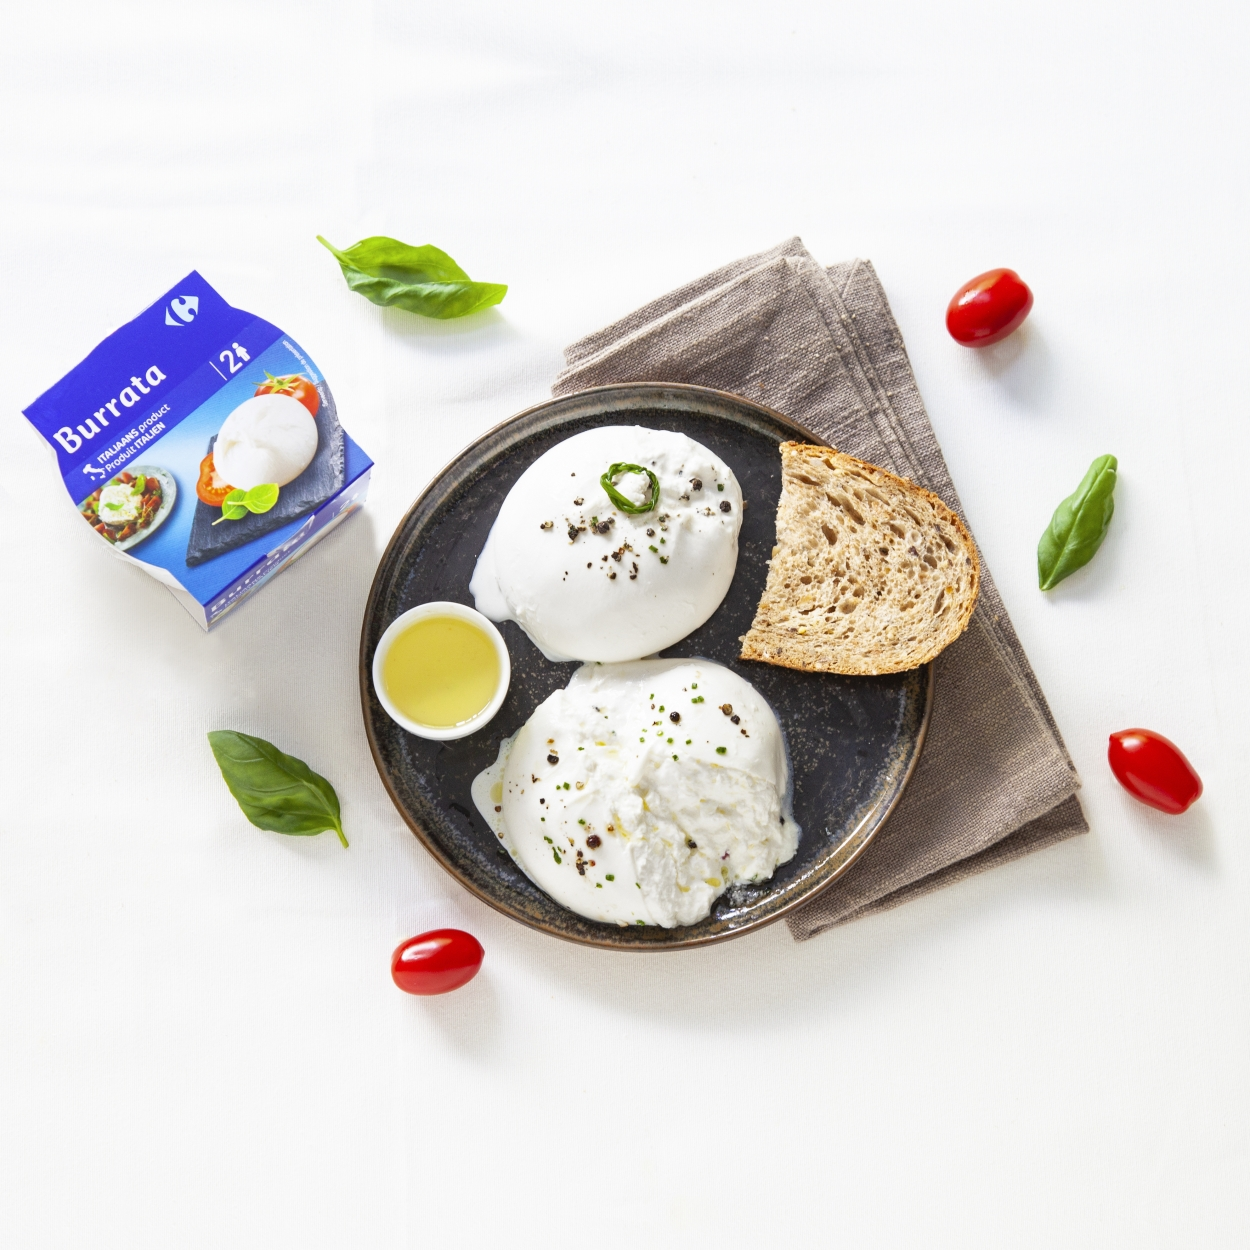 Burrata Carrefour